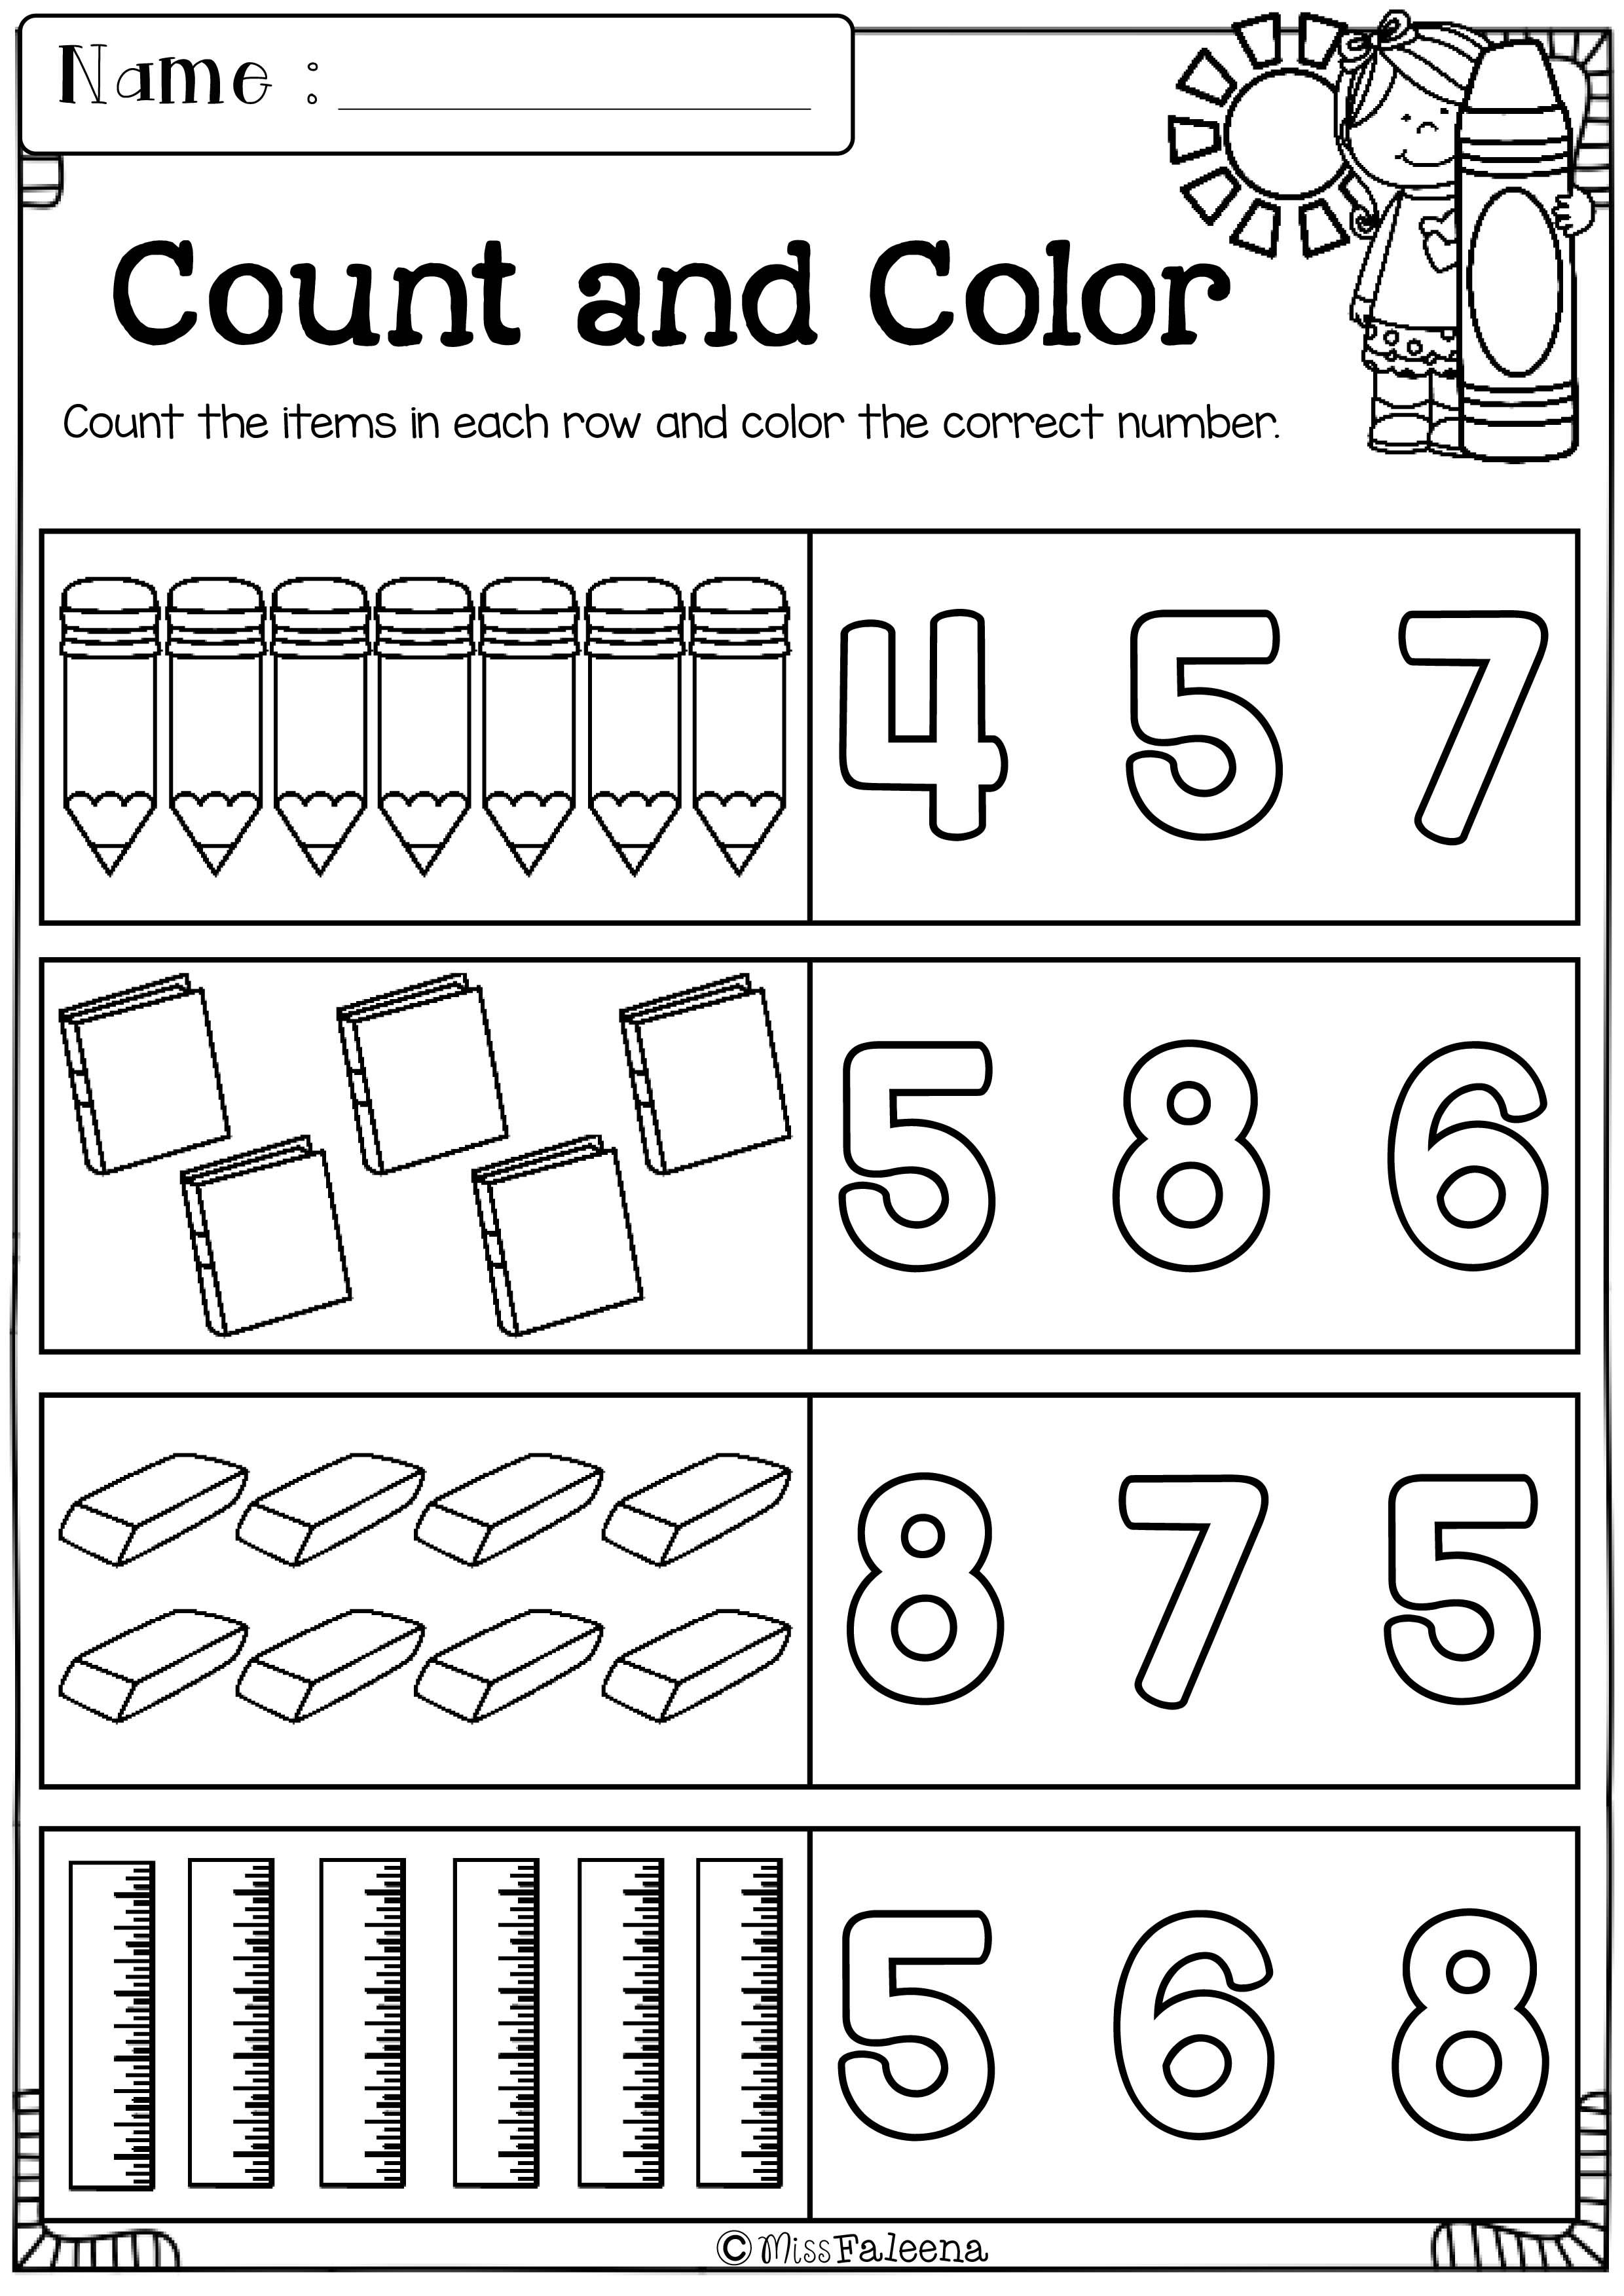 Cow Counting Worksheet